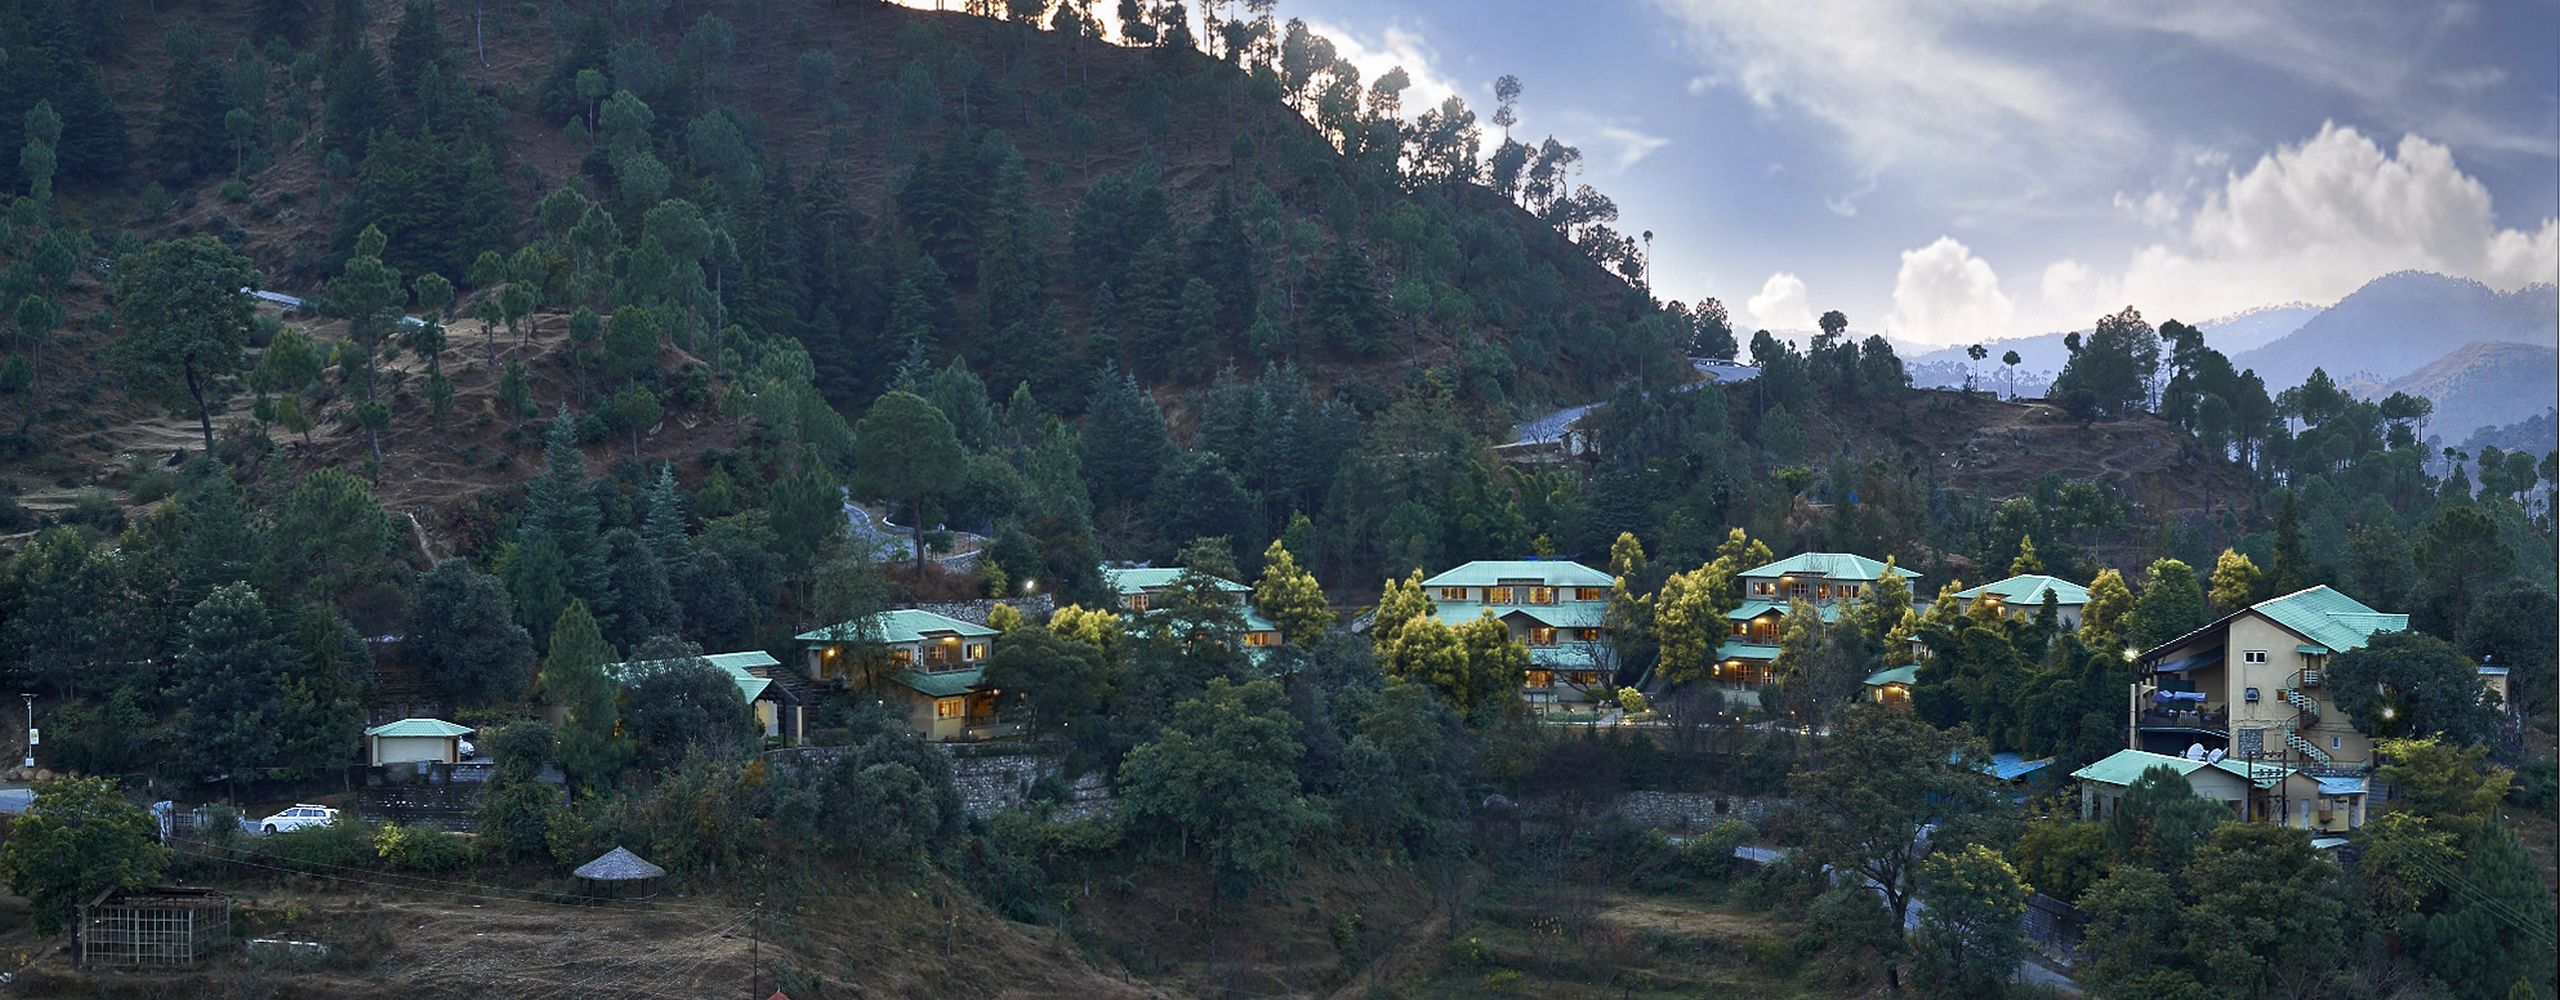 Binsar India  city pictures gallery : ... Tourist Destinations, Tourist Information, BINSAR Information, India